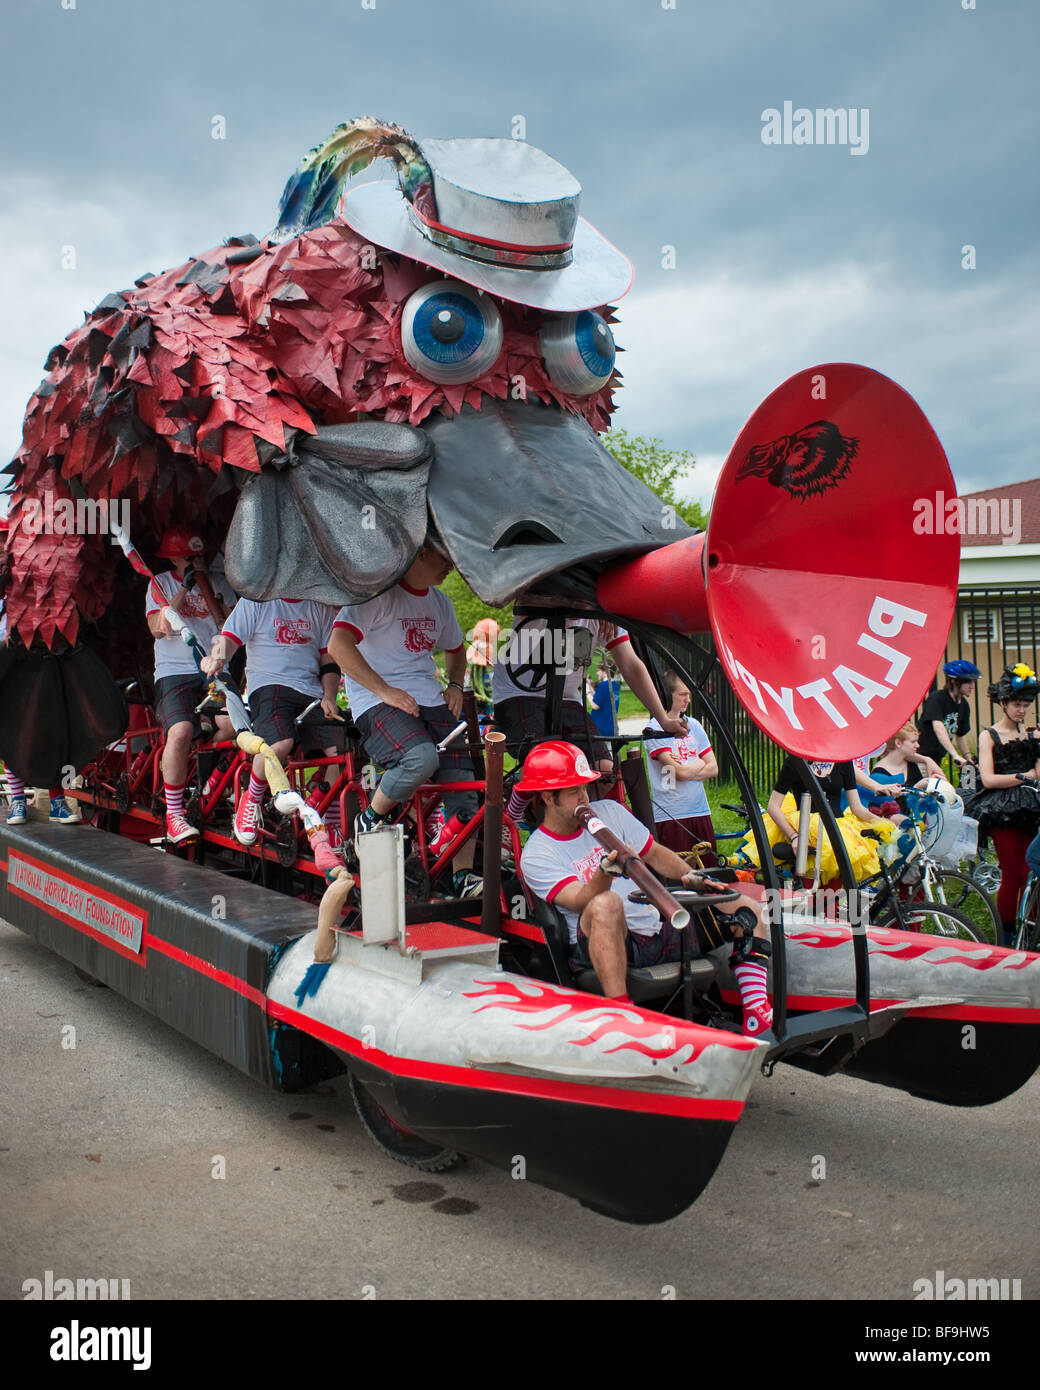 Platypus by David Hess, kinetic sculpture race in Baltimore sponsored by AVAM - Stock Image